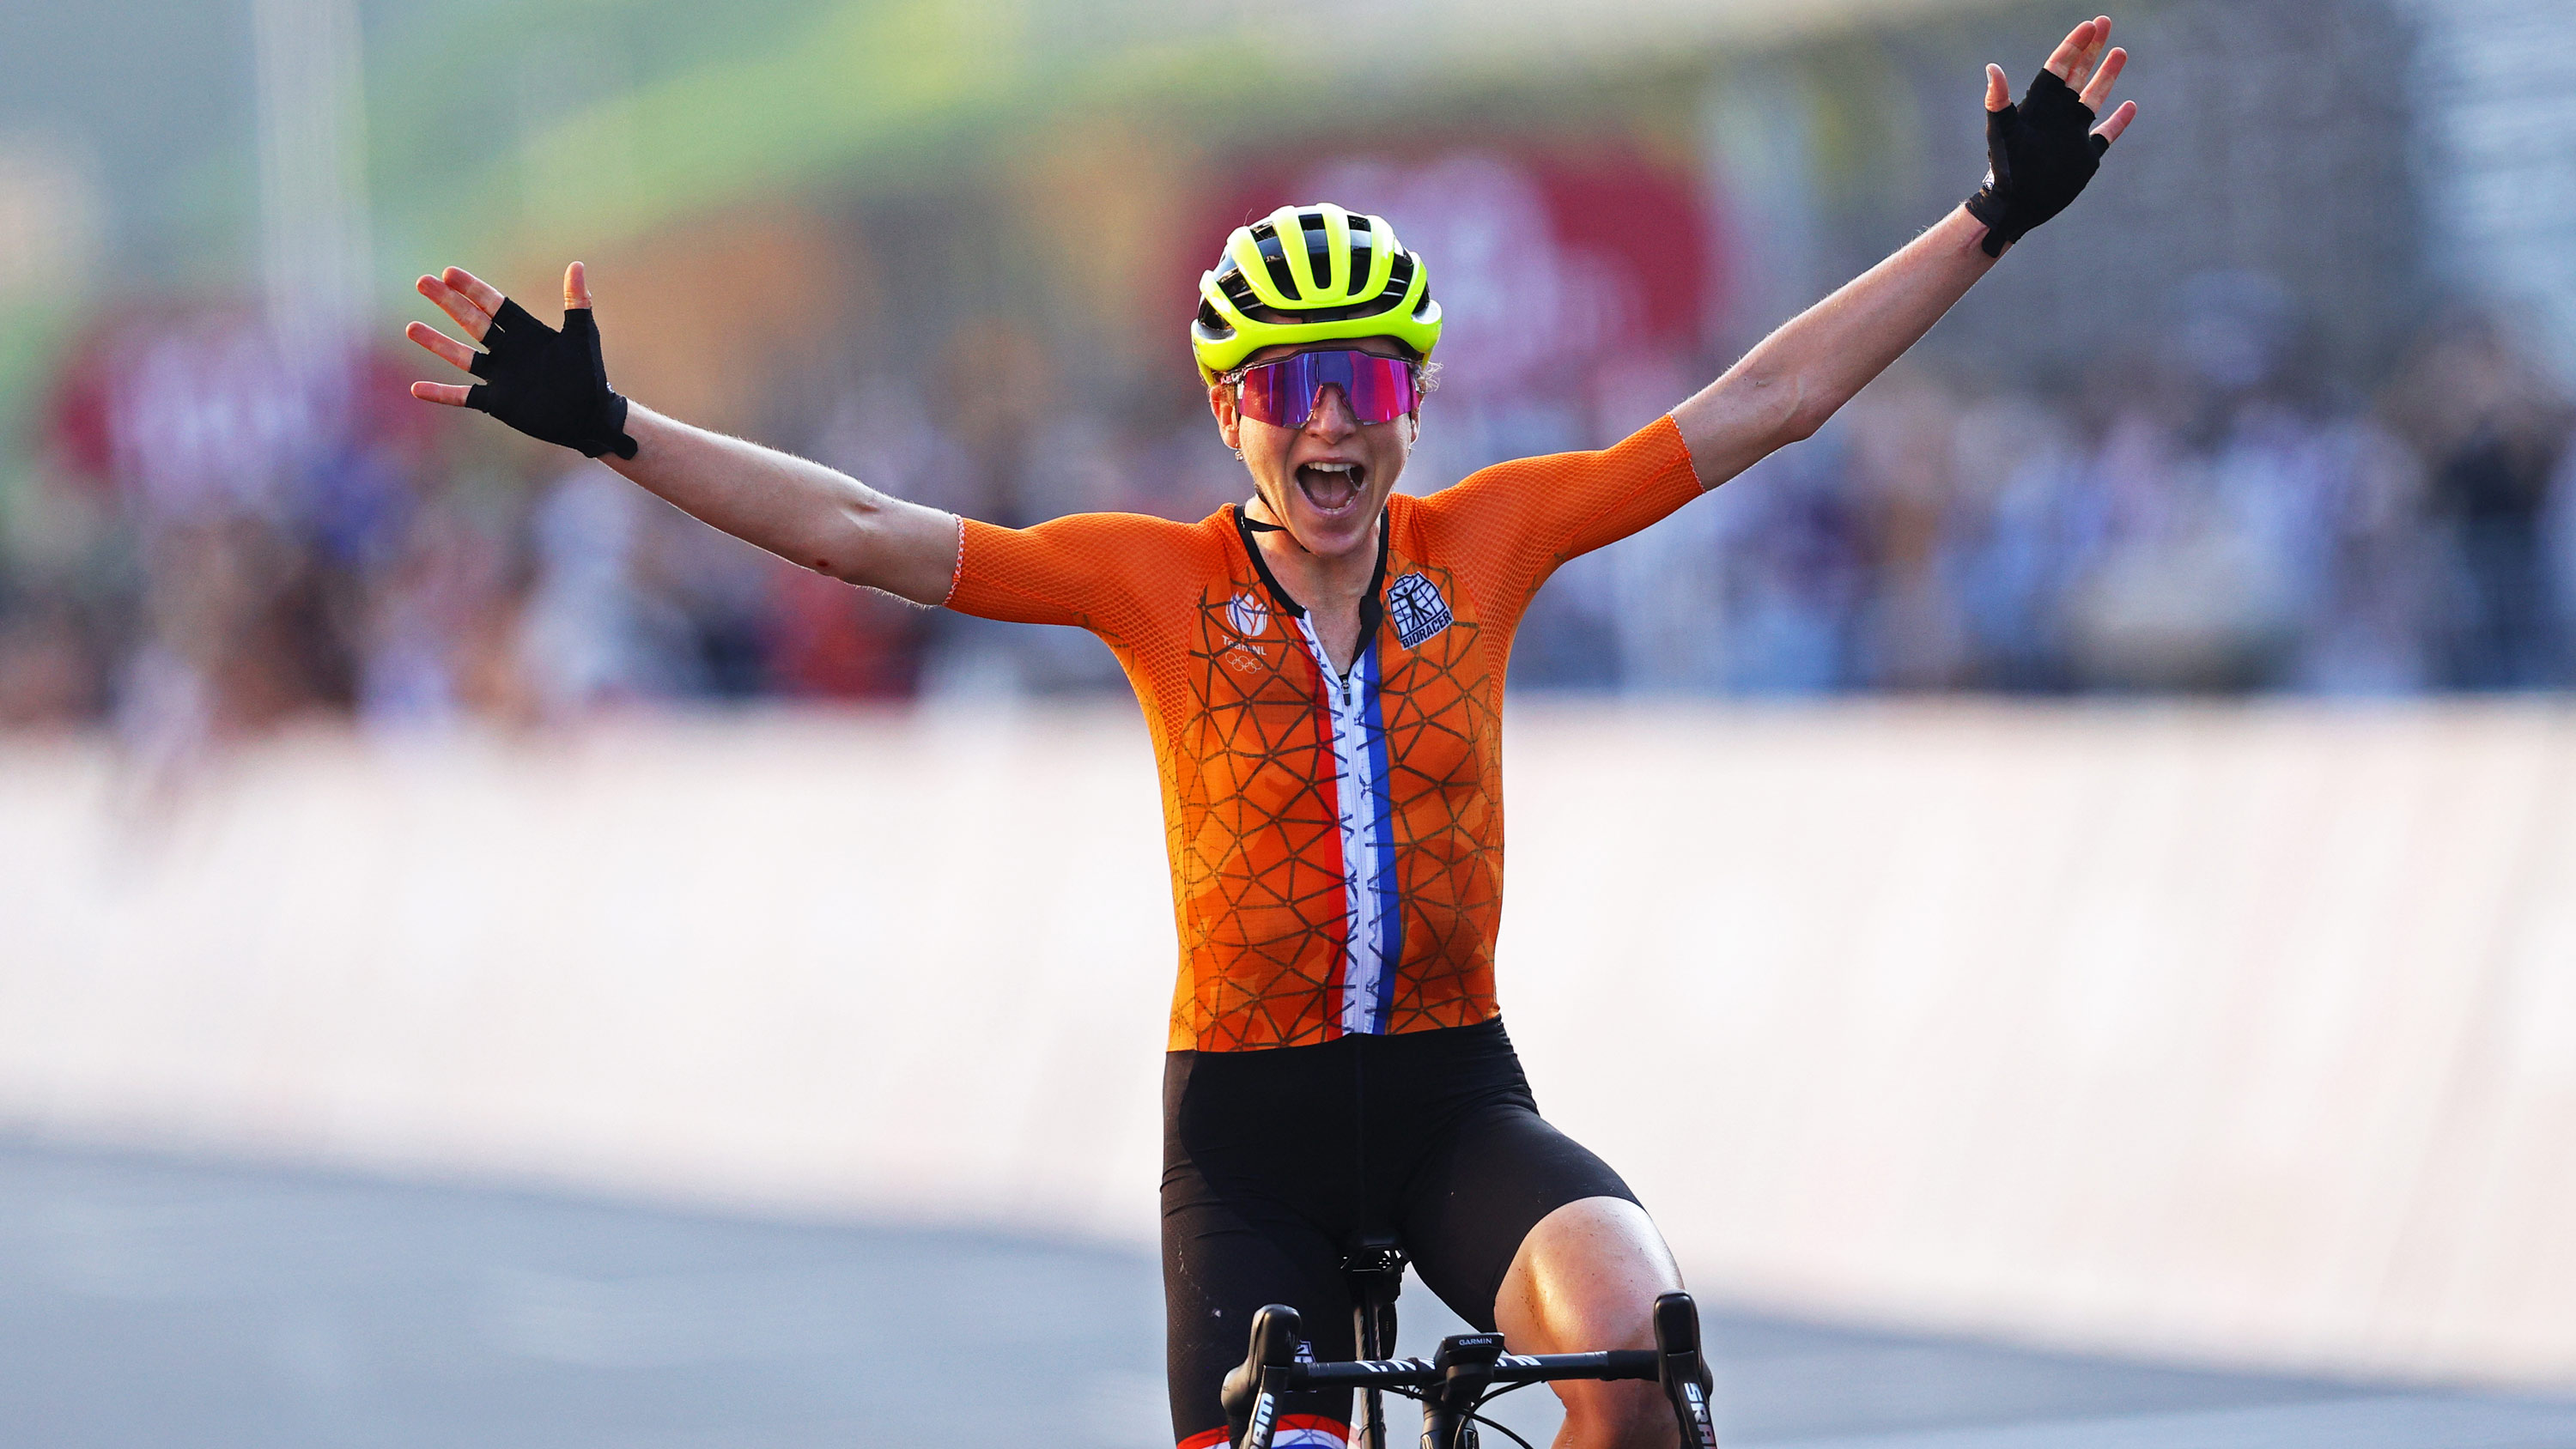 Annemiek van Vleuten of Team Netherlands celebrates while crossing the finishing line winning the silver medal in the road race on July 25.